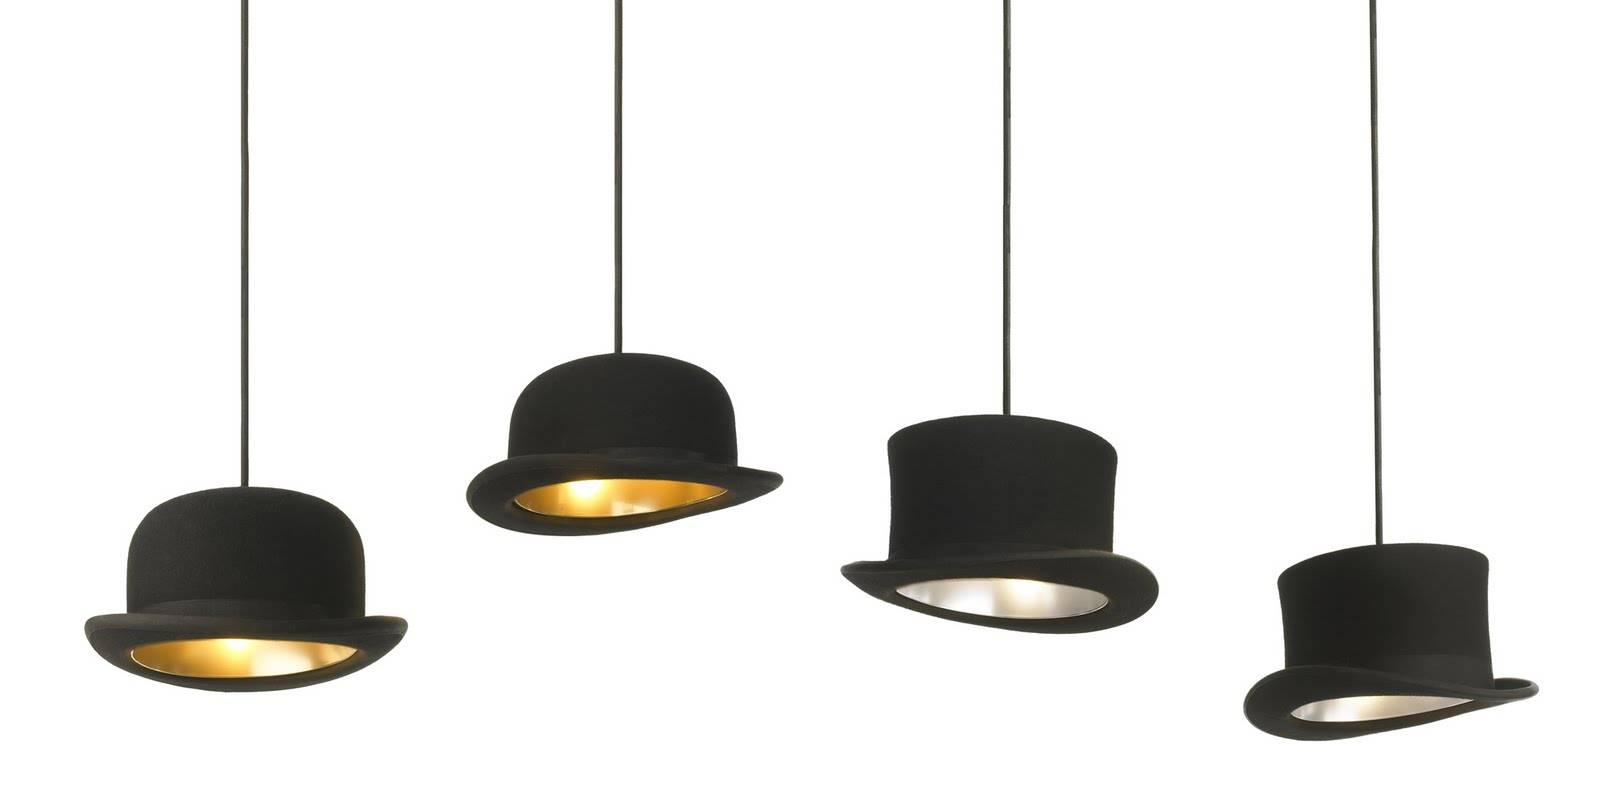 Jeeves & Wooster Pendant Lights - Decoholic intended for Jeeves And Wooster Pendant Lights (Image 8 of 15)